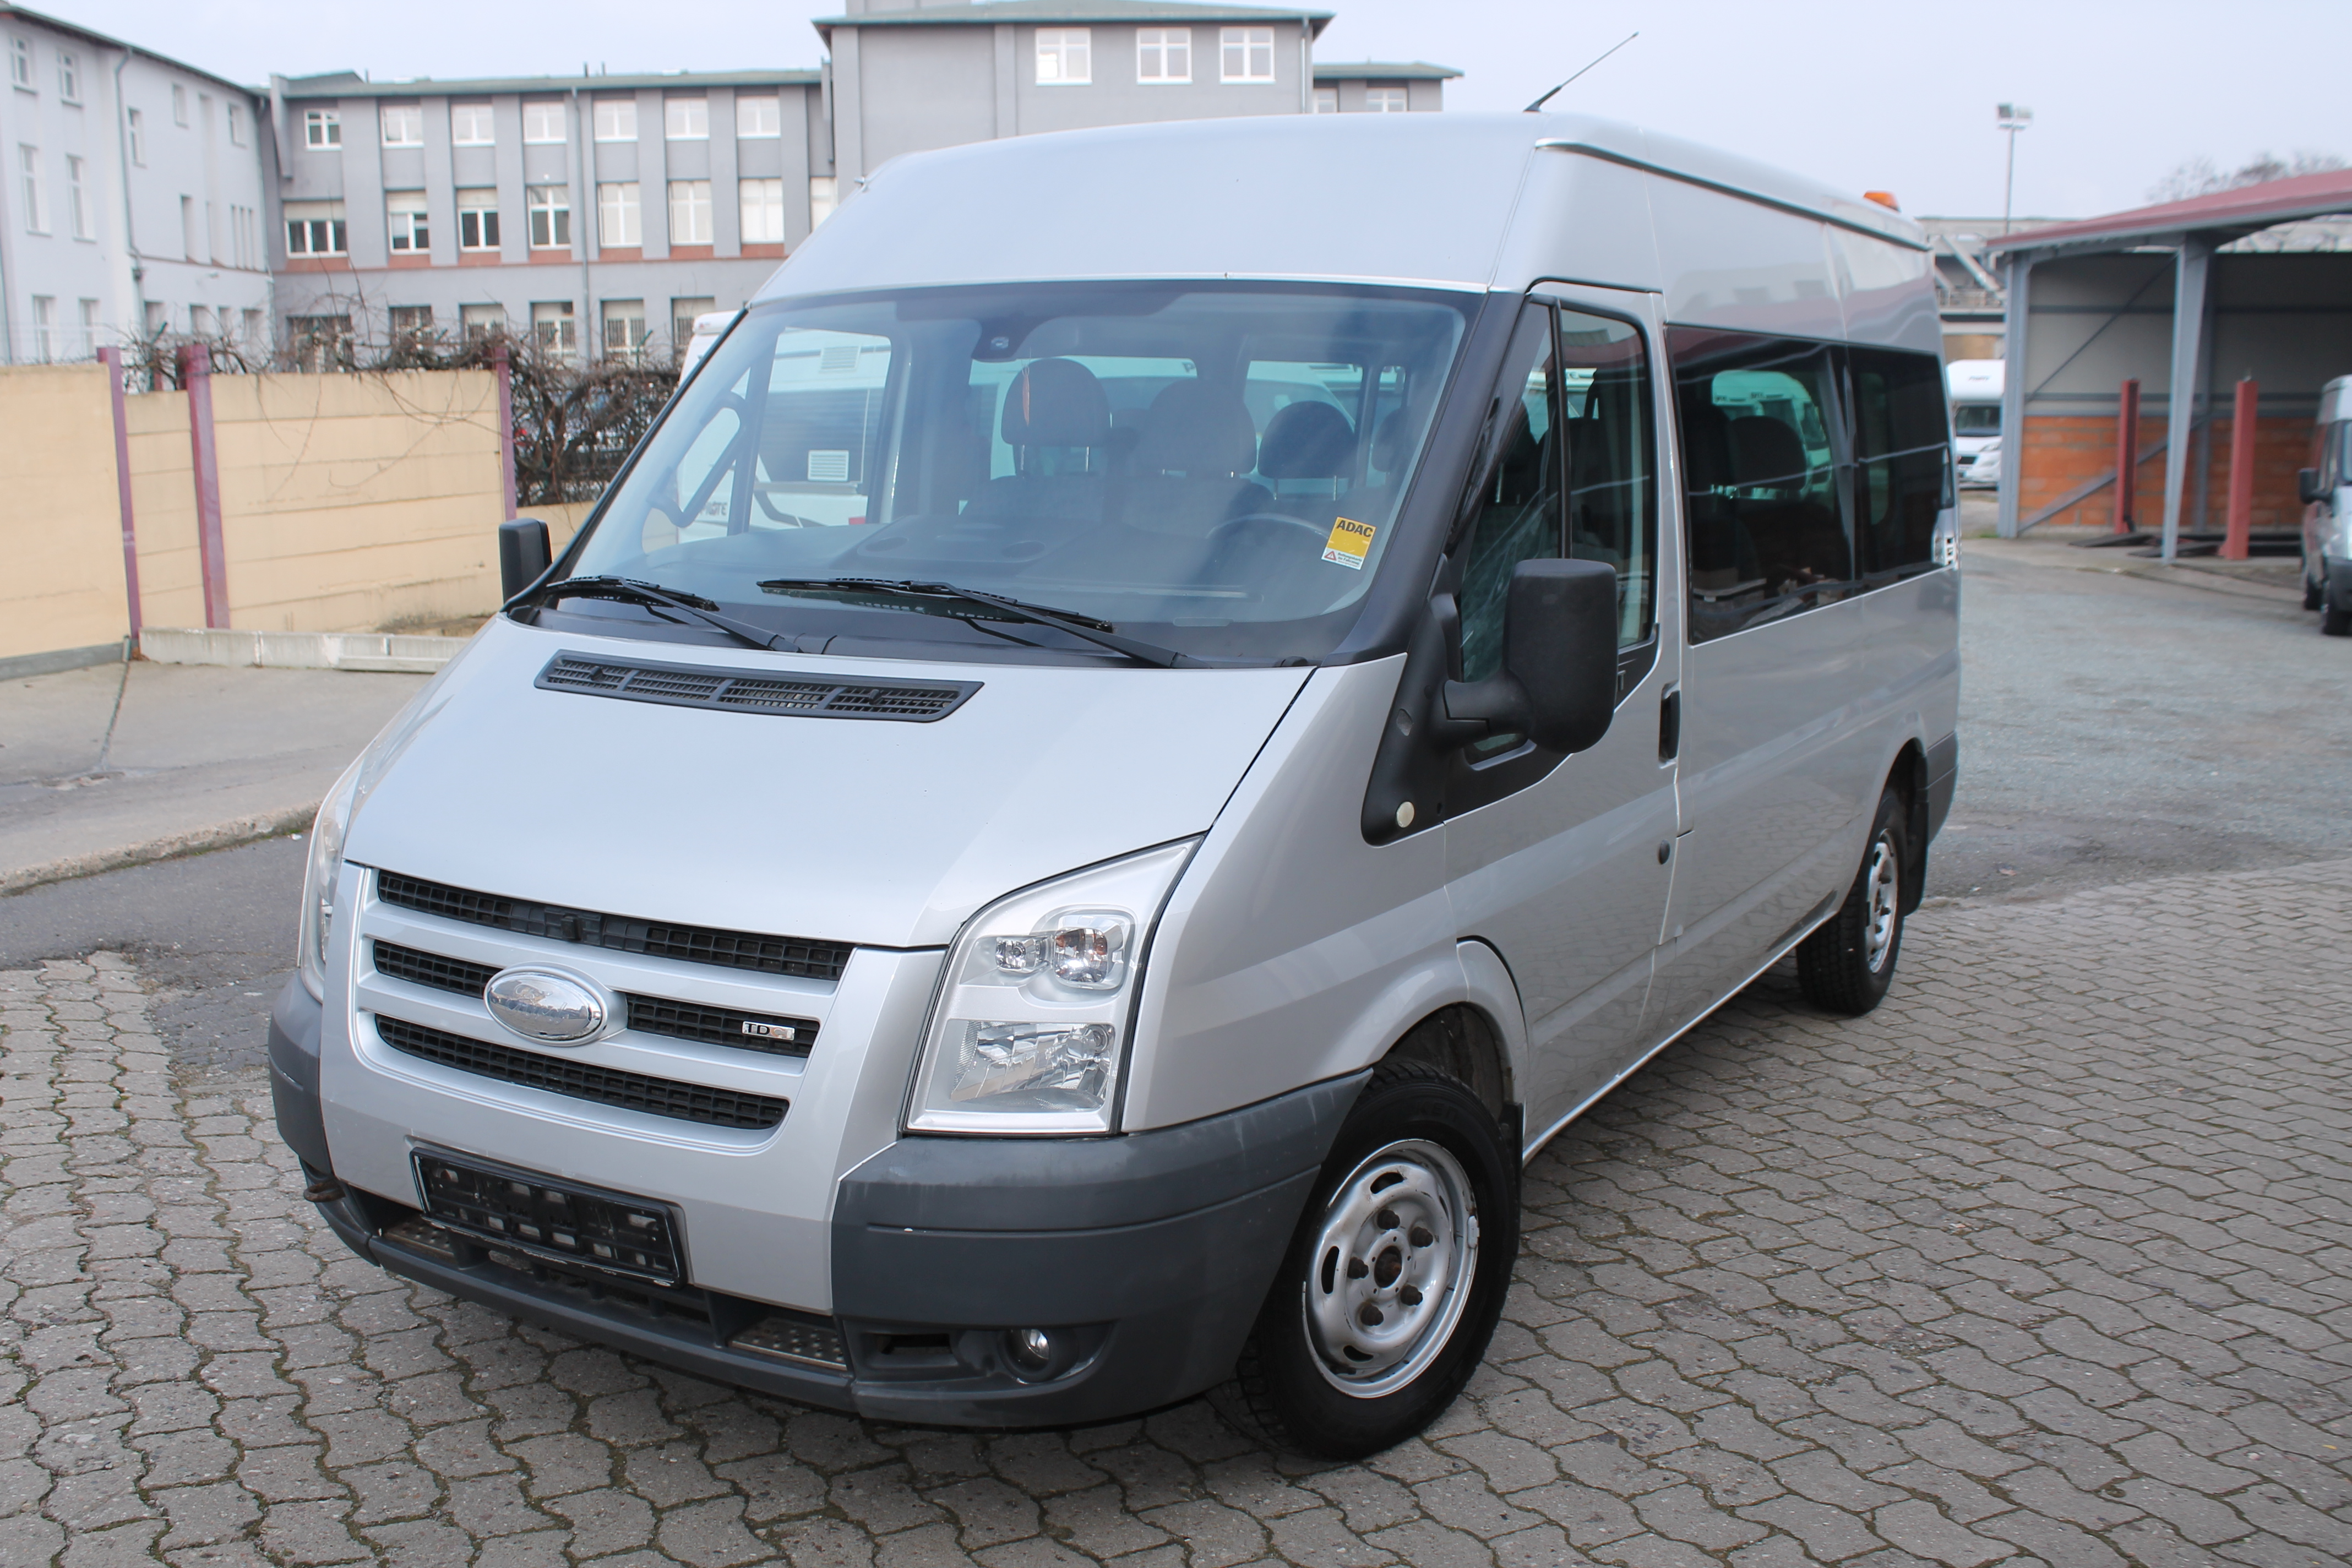 ford transit 9 sitzer berger reisemobile. Black Bedroom Furniture Sets. Home Design Ideas